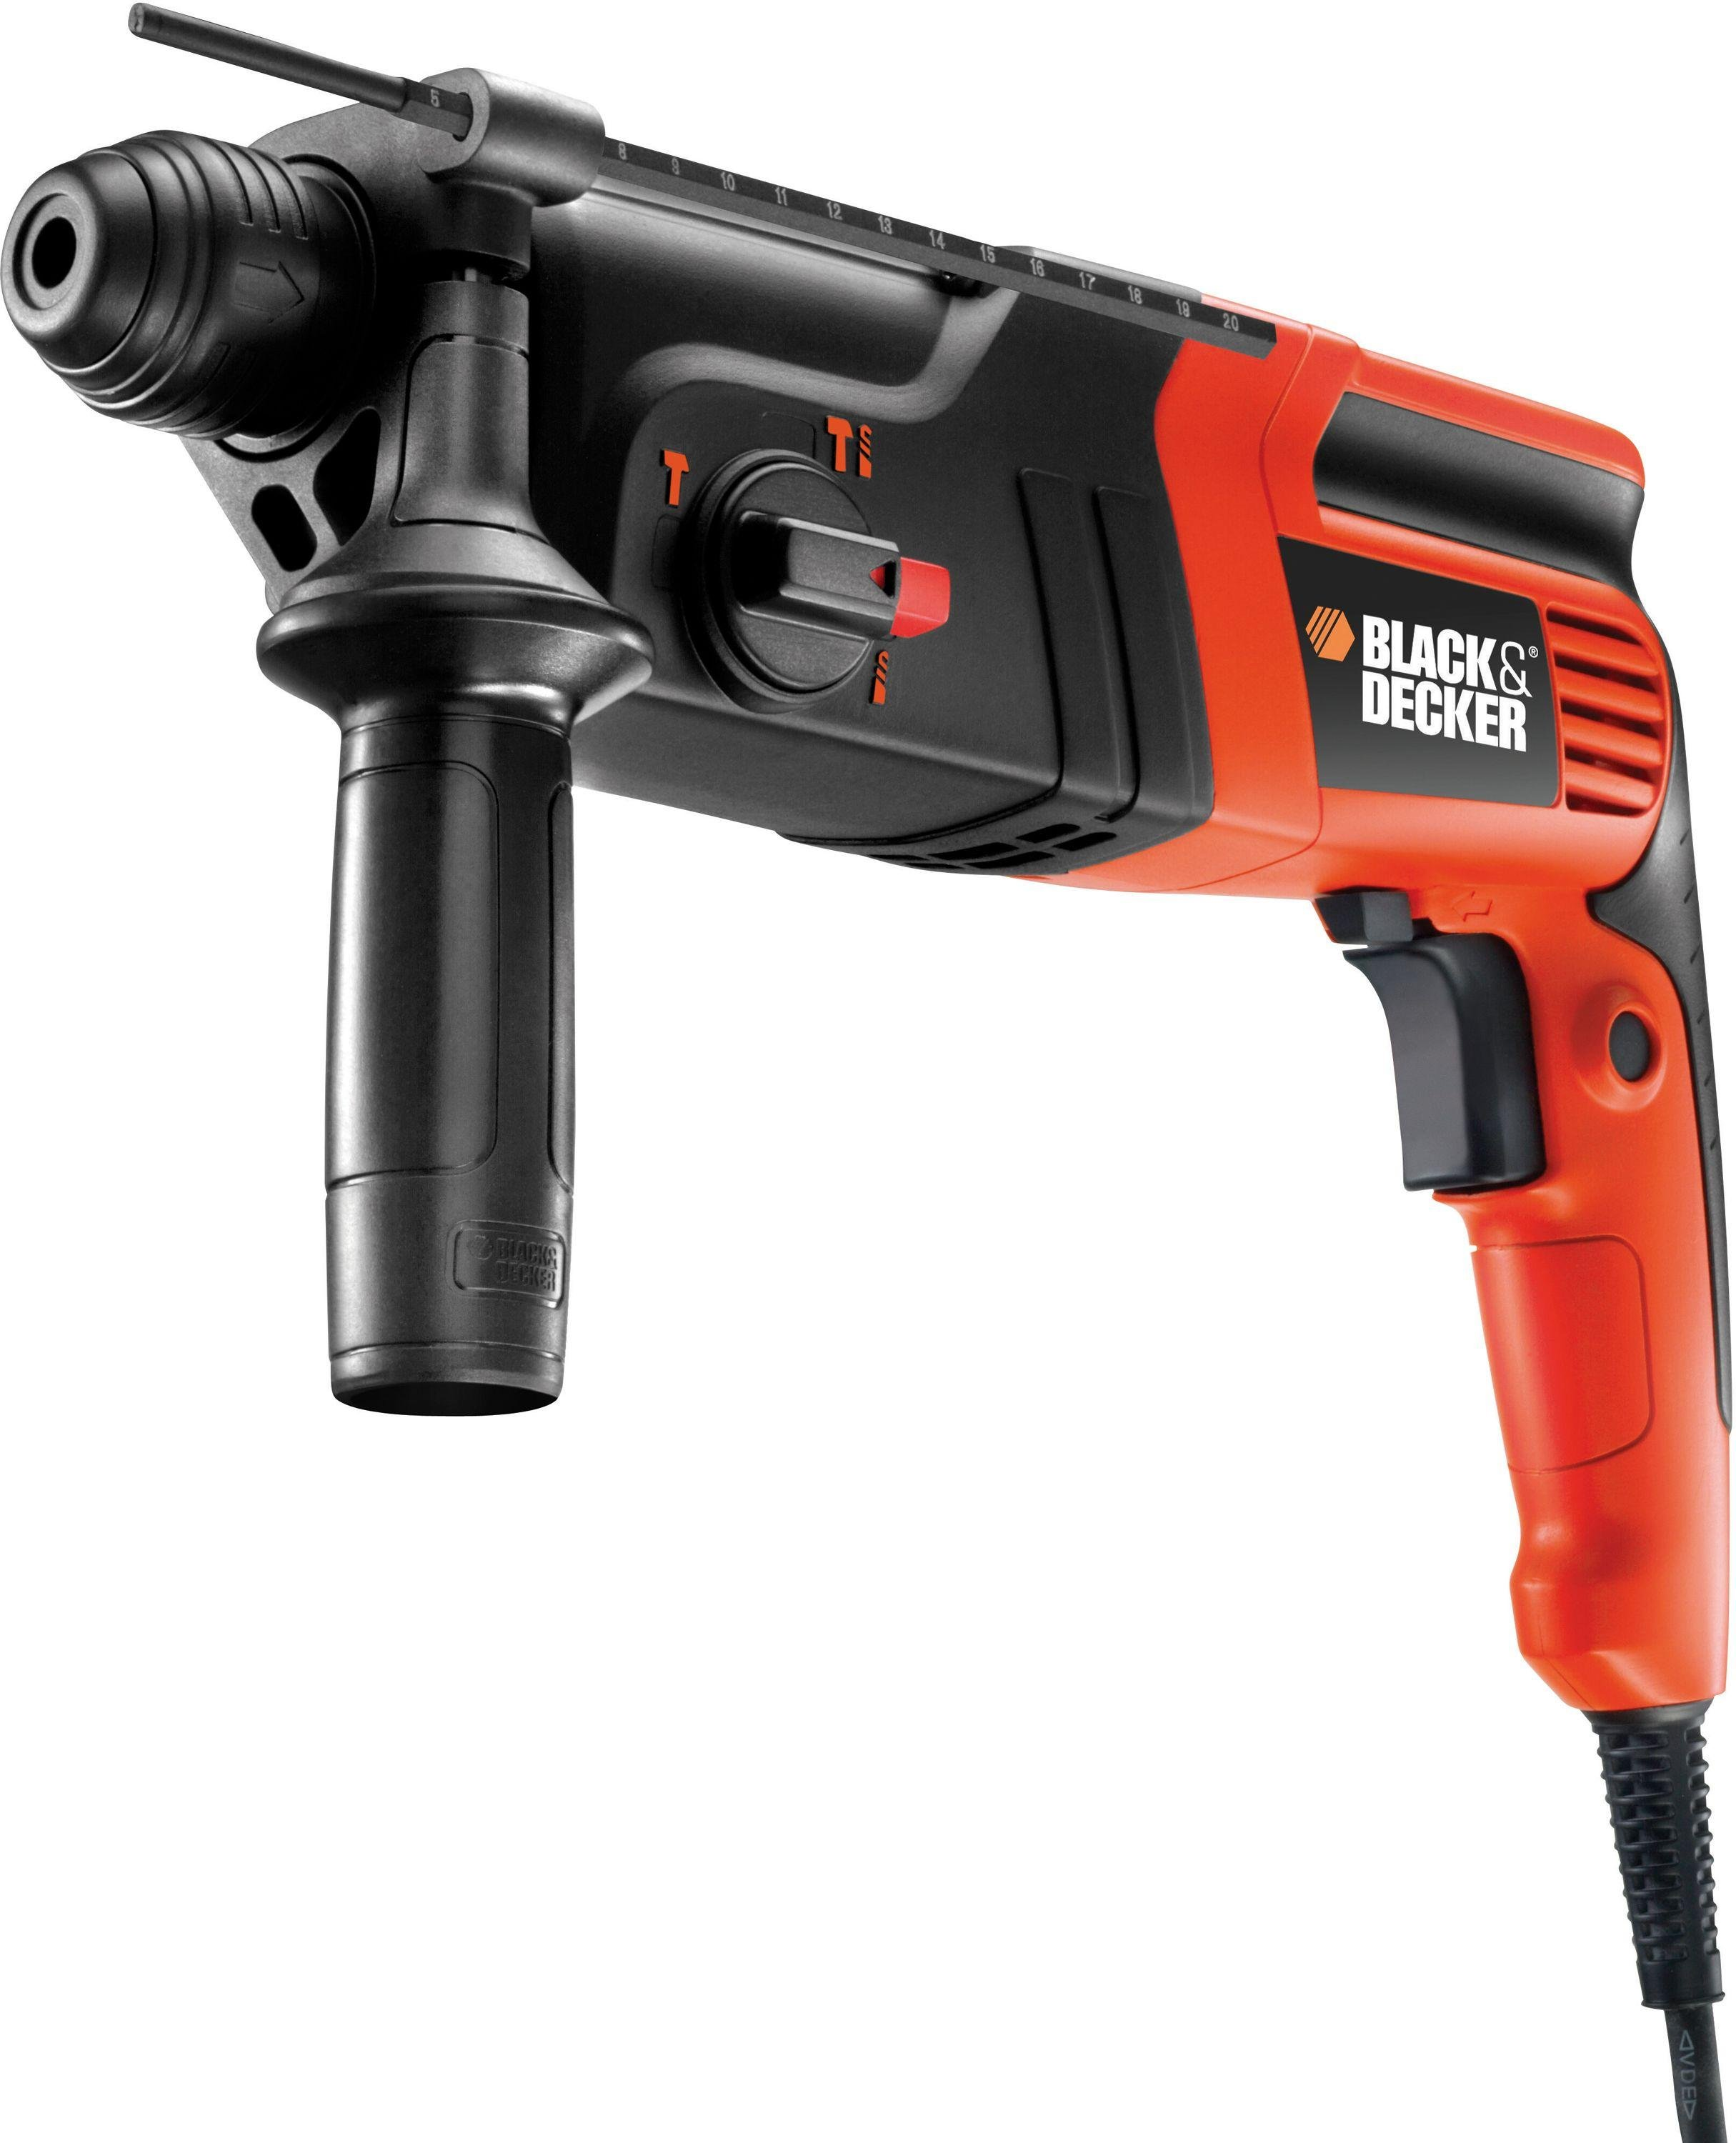 Image of Black and Decker - 600w SDS Pnuematic Hammer Drill and Kitbox